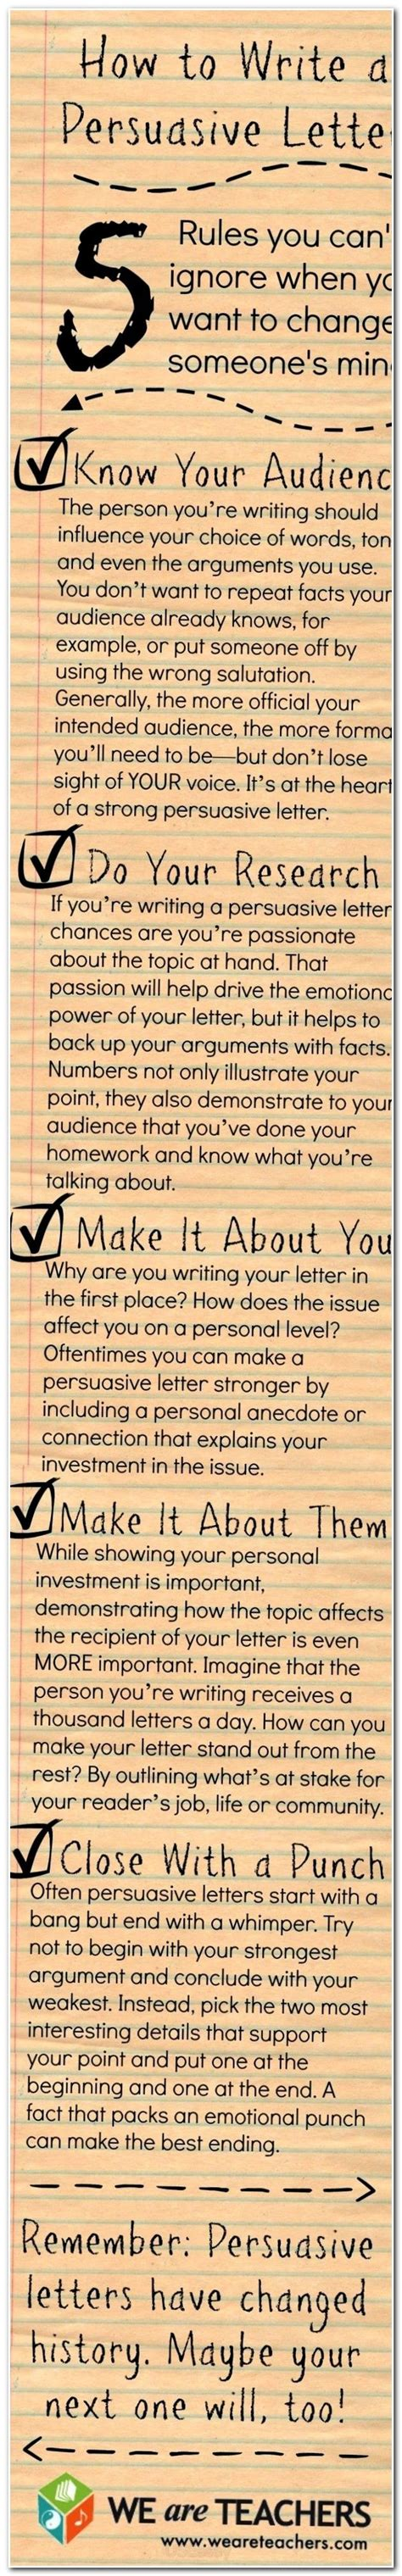 Essay Contests Exles by 25 Best Ideas About Essay Exles On Essay Writing Exles Persuasive Text